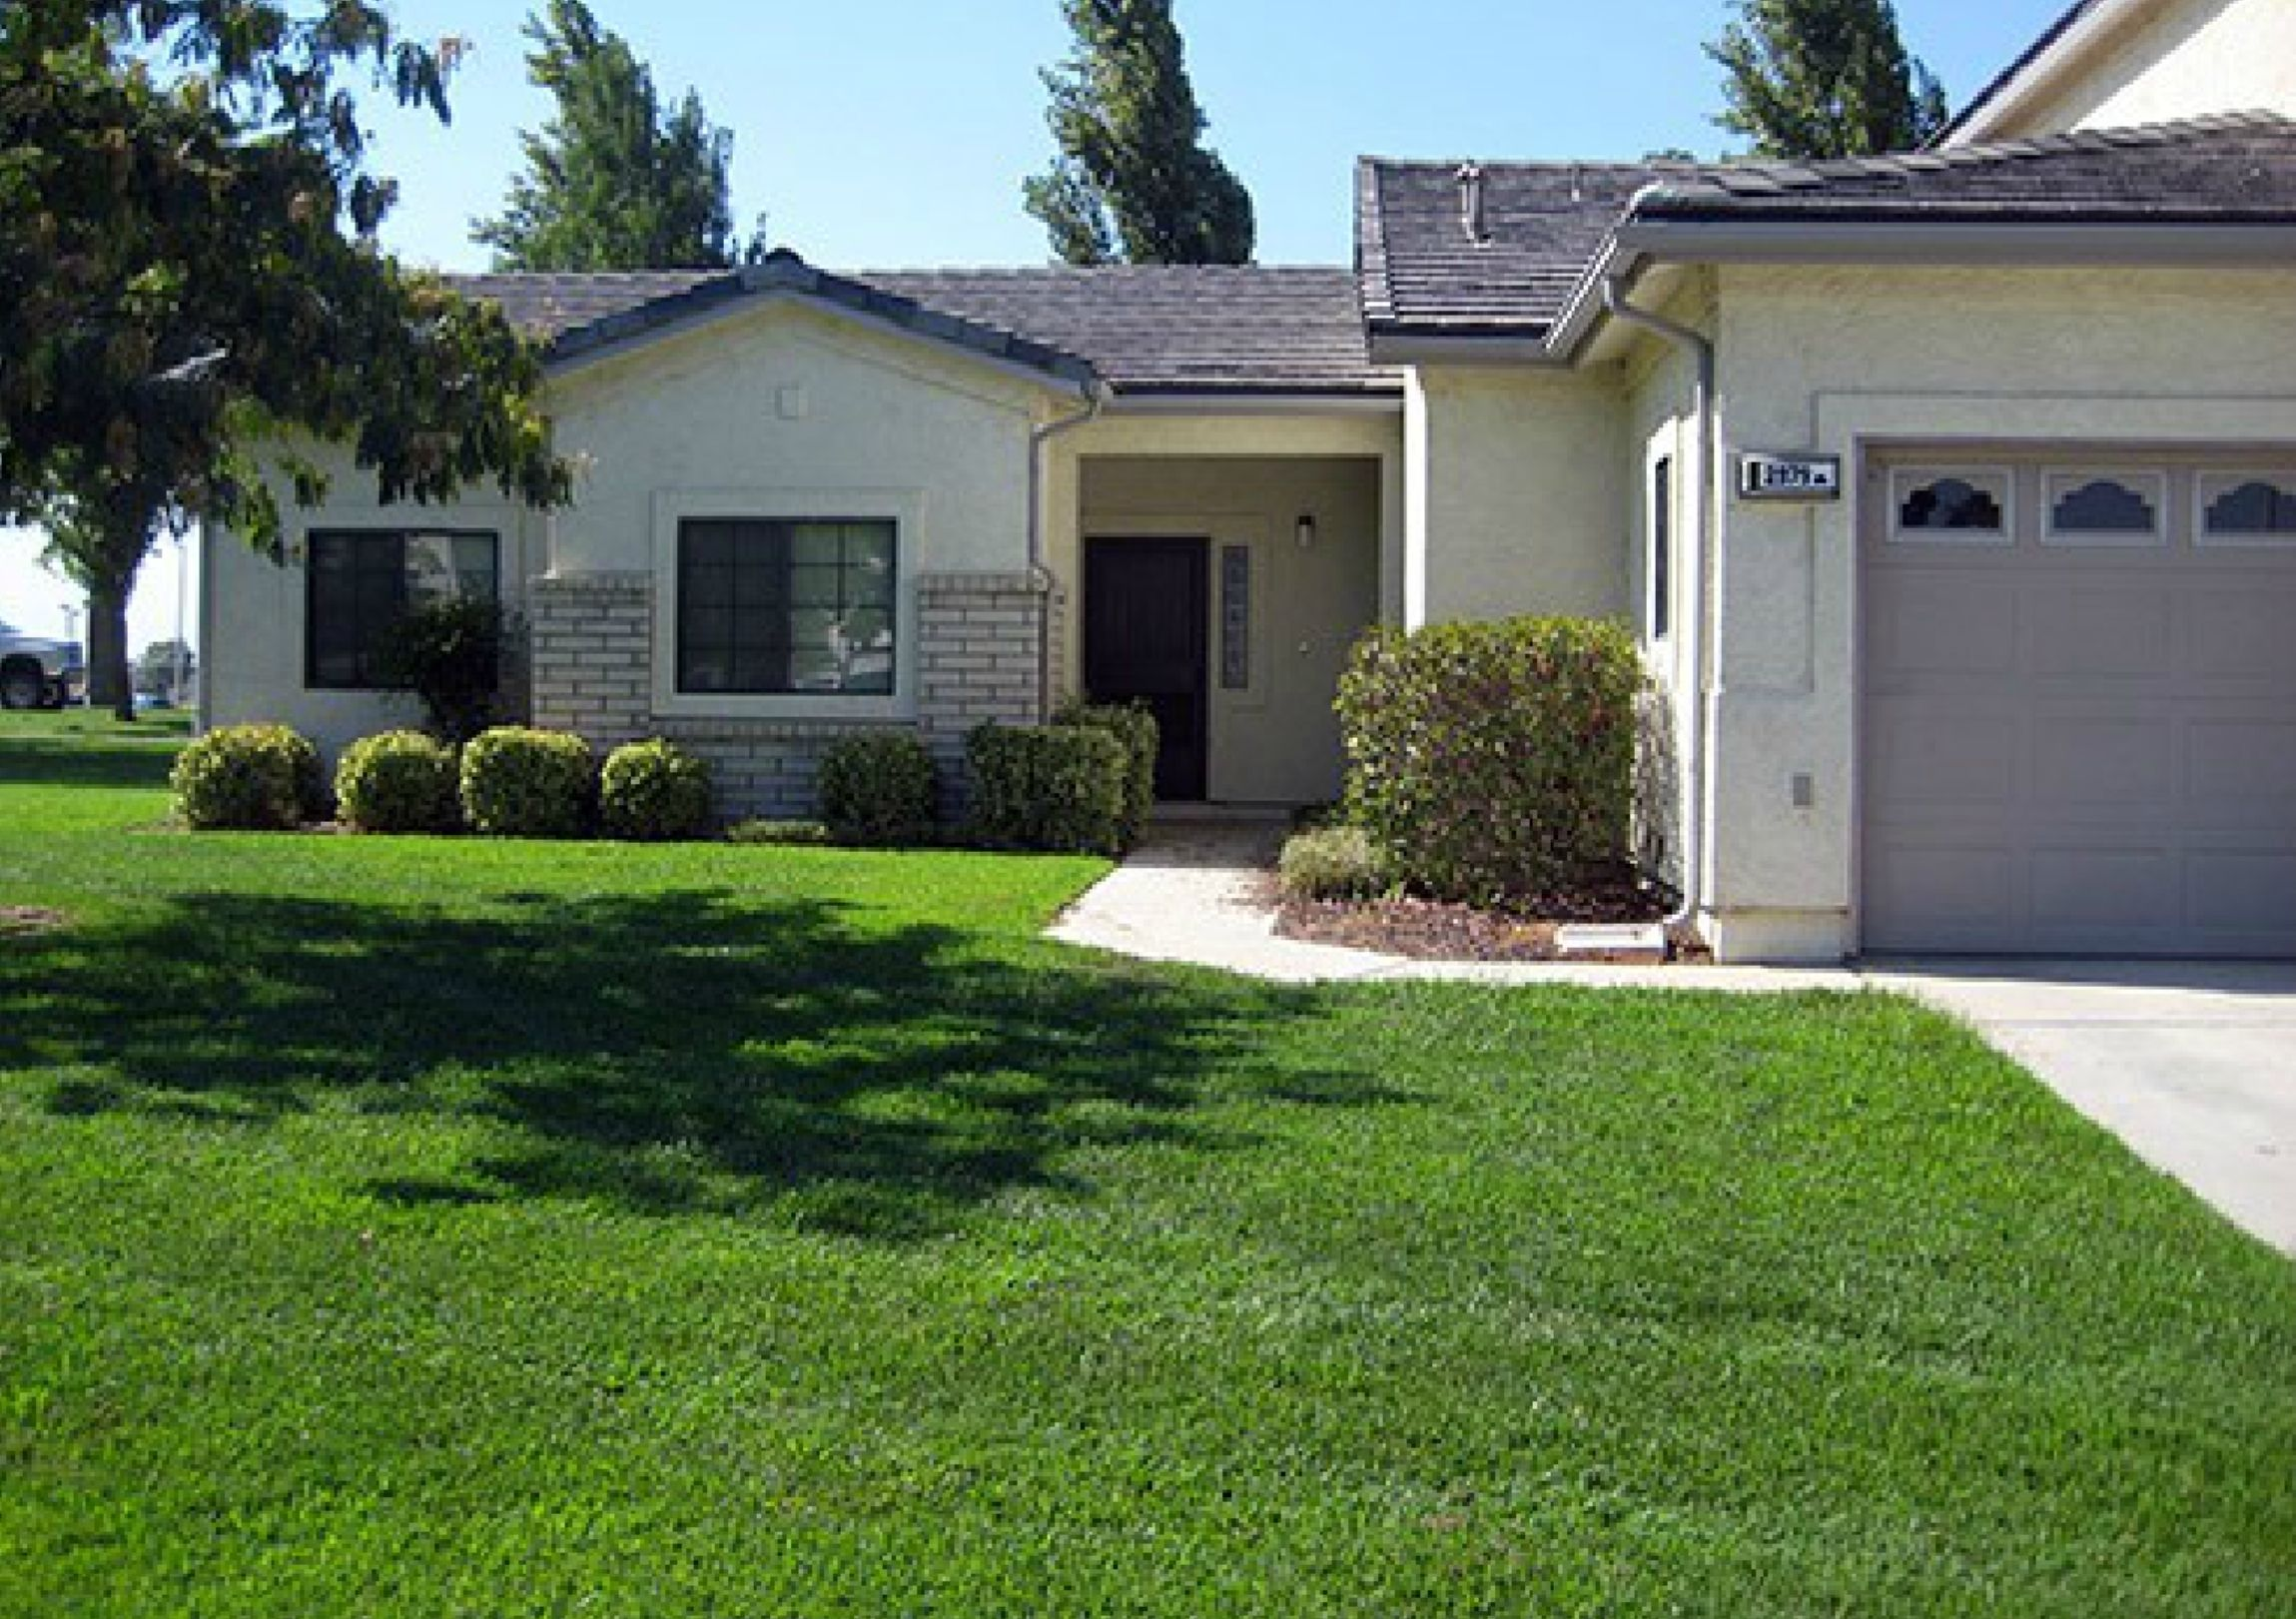 NAS Lemoore Constellation Park Neighborhood Duplex style homes